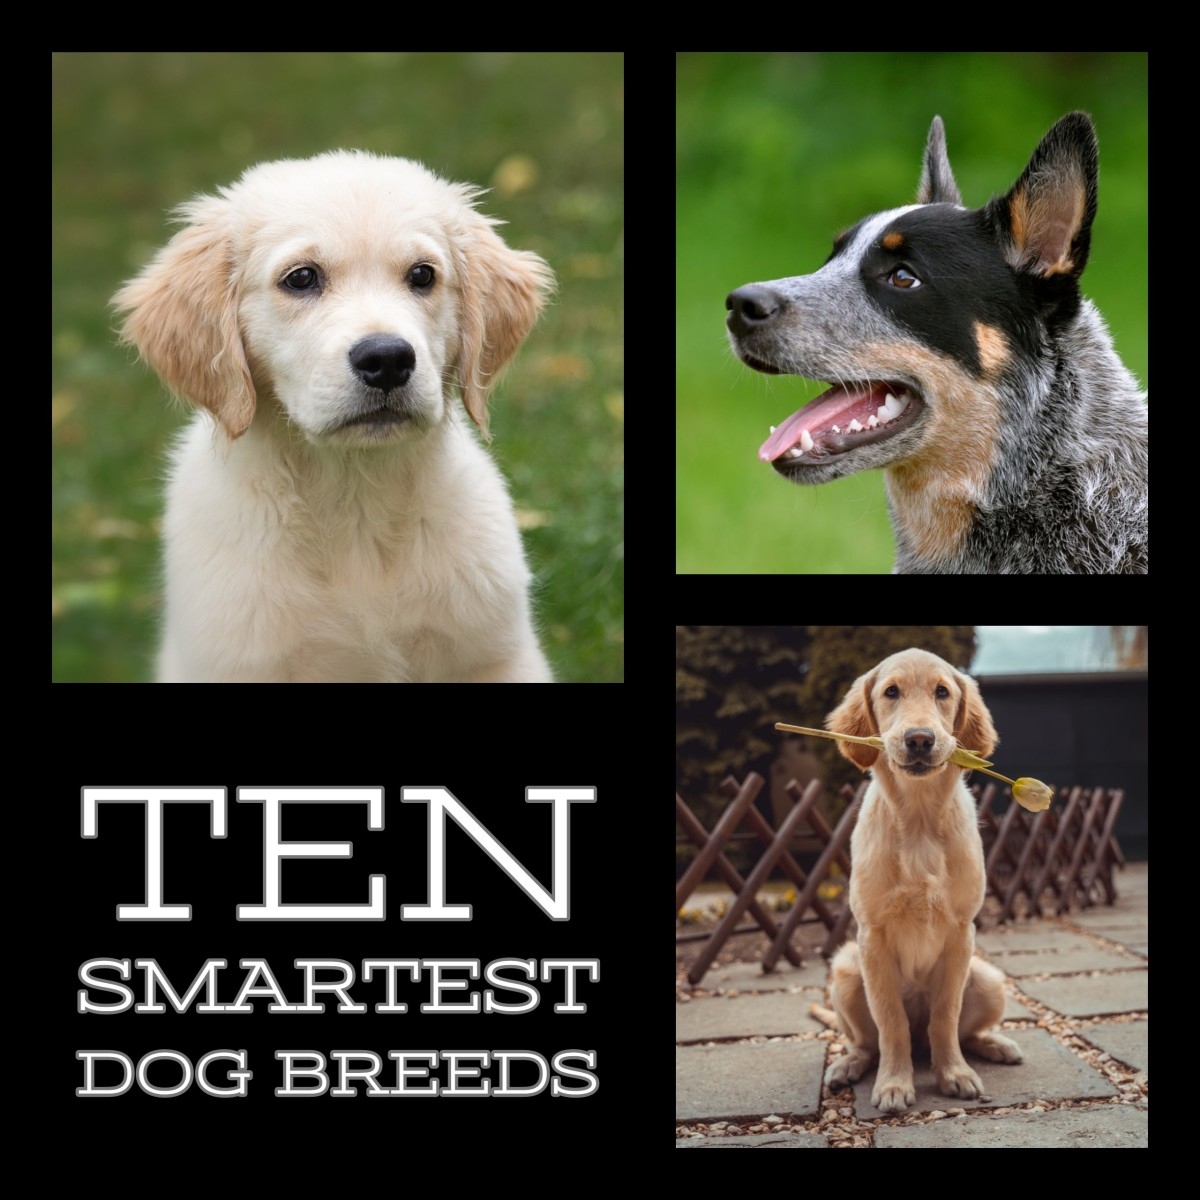 The ten smartest dog breeds. Pictured above is the Australian Cattle Dog, Labrador Retriever, and Golden Retriever.